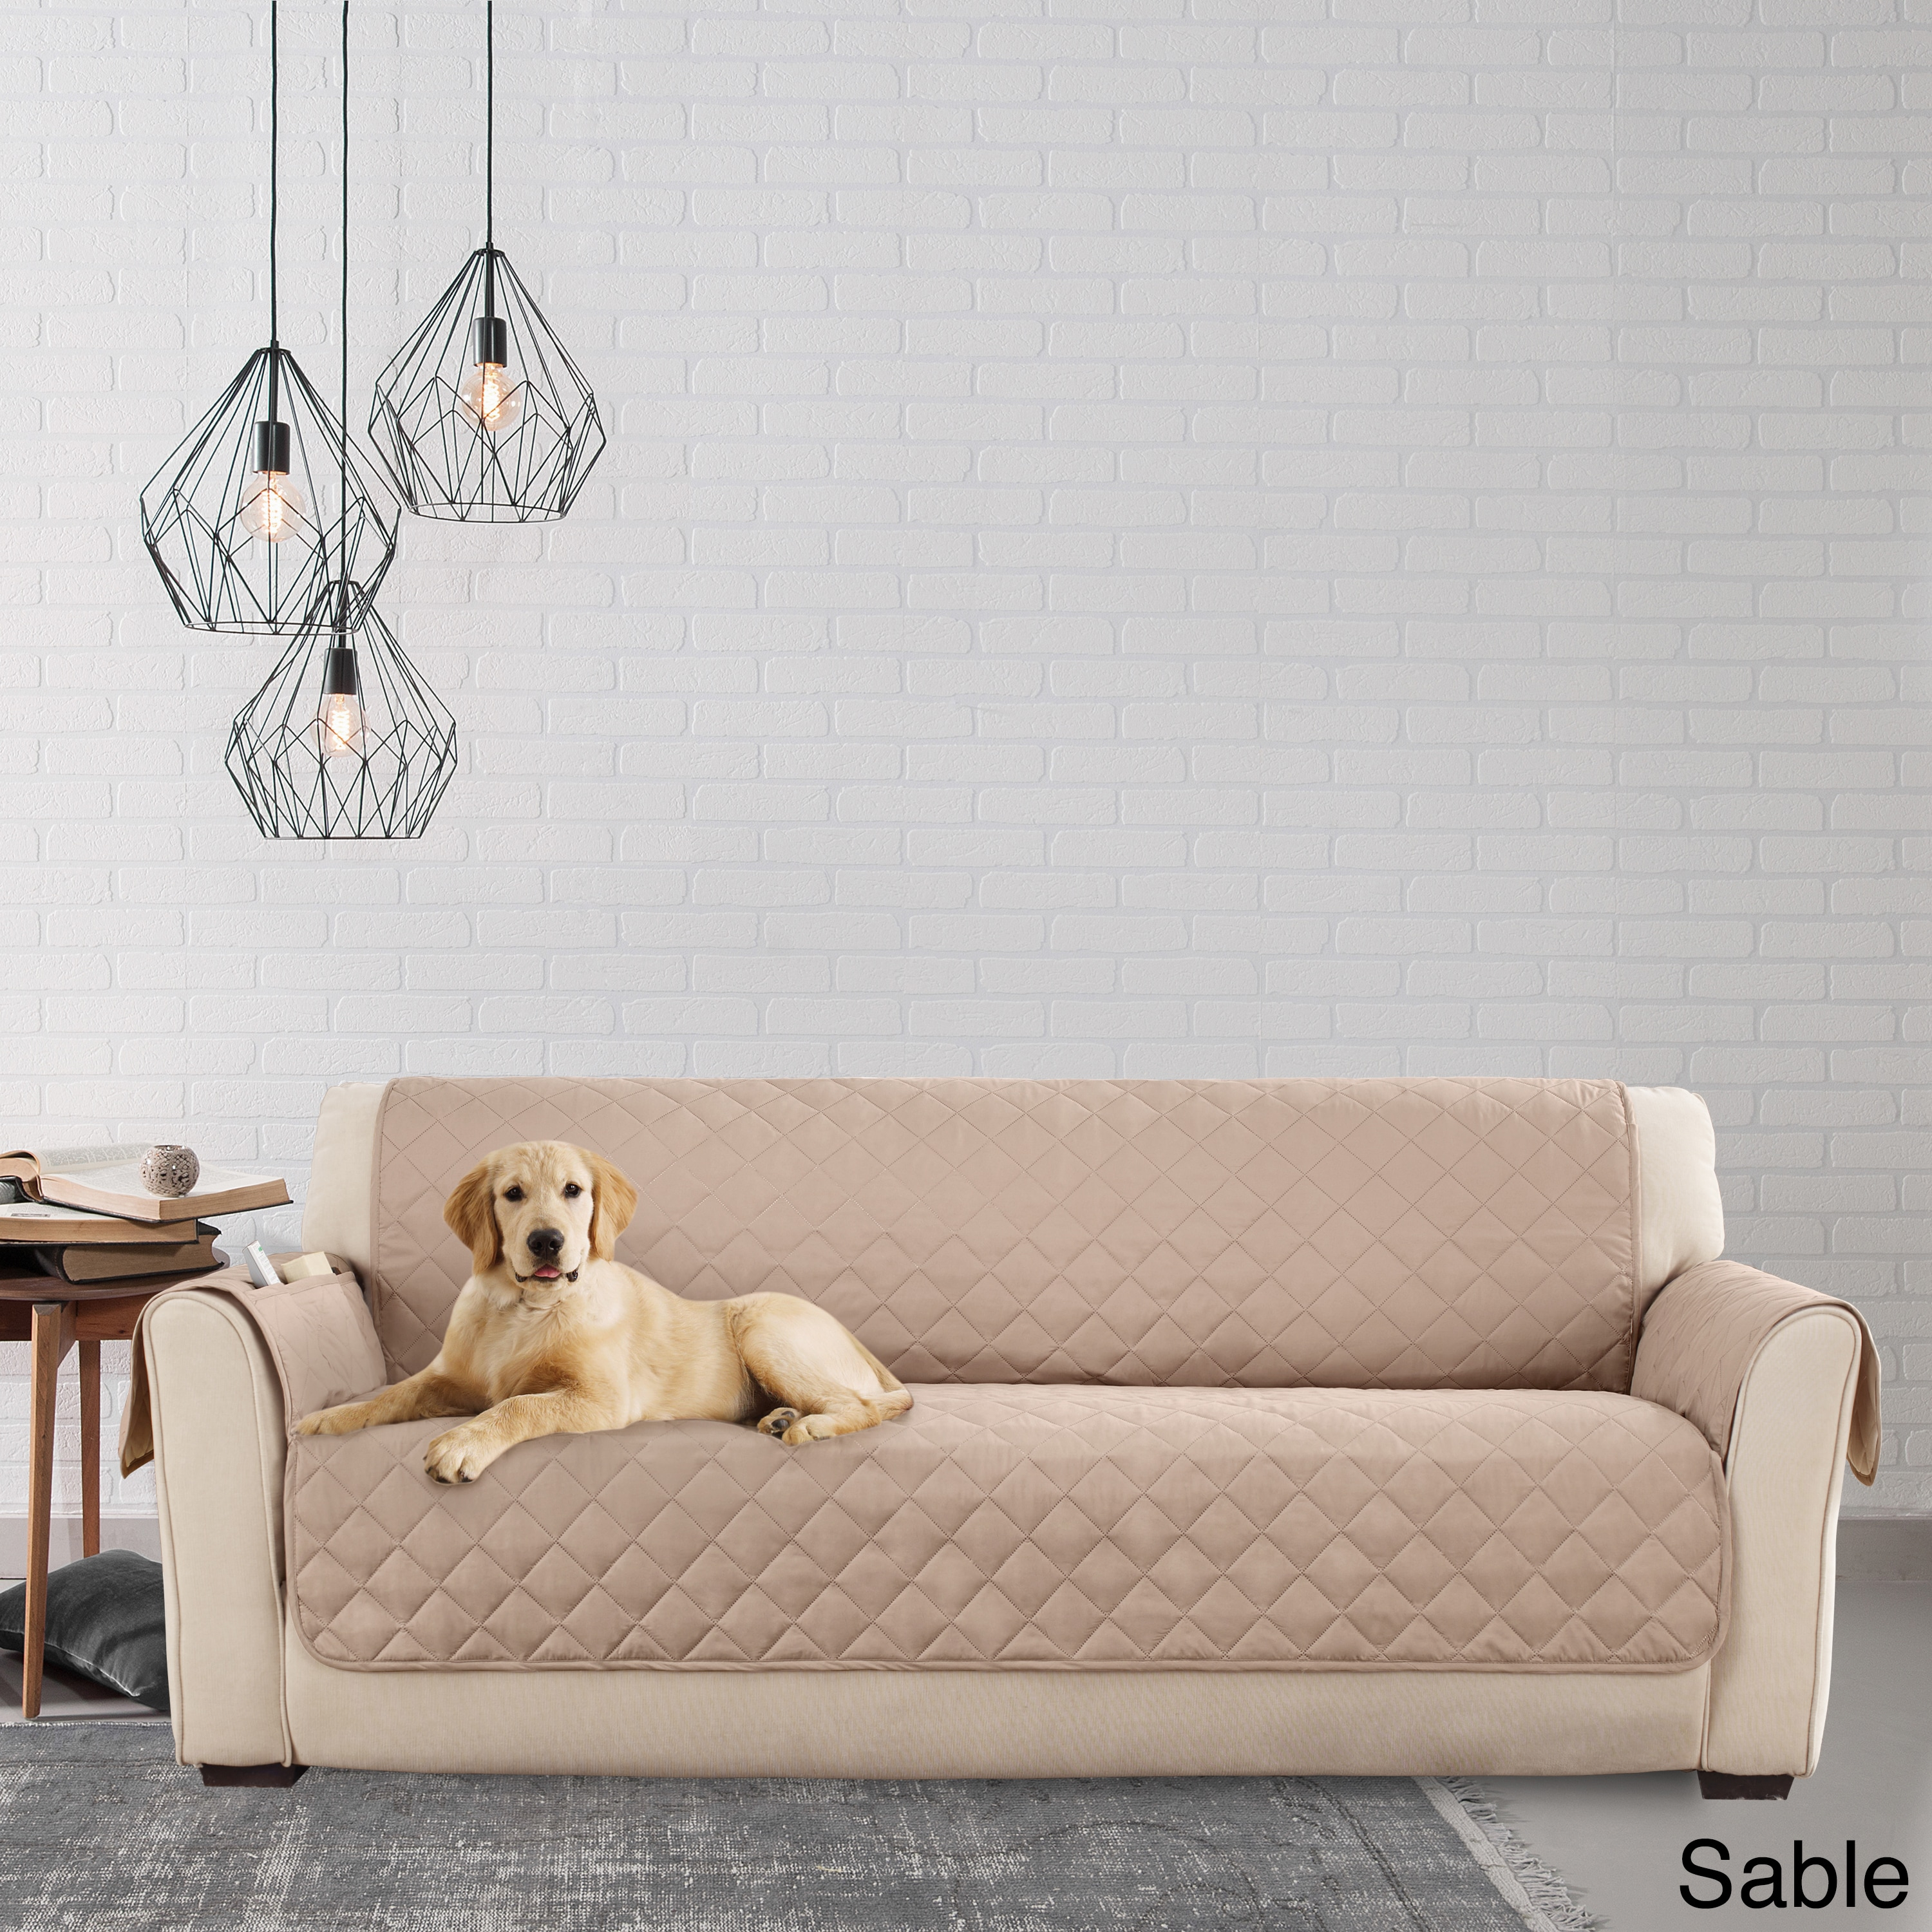 Sure Fit Microfiber Non-Slip Sofa Pet Cover/Furniture Protector - Free  Shipping On Orders Over $45 - Overstock.com - 18838935